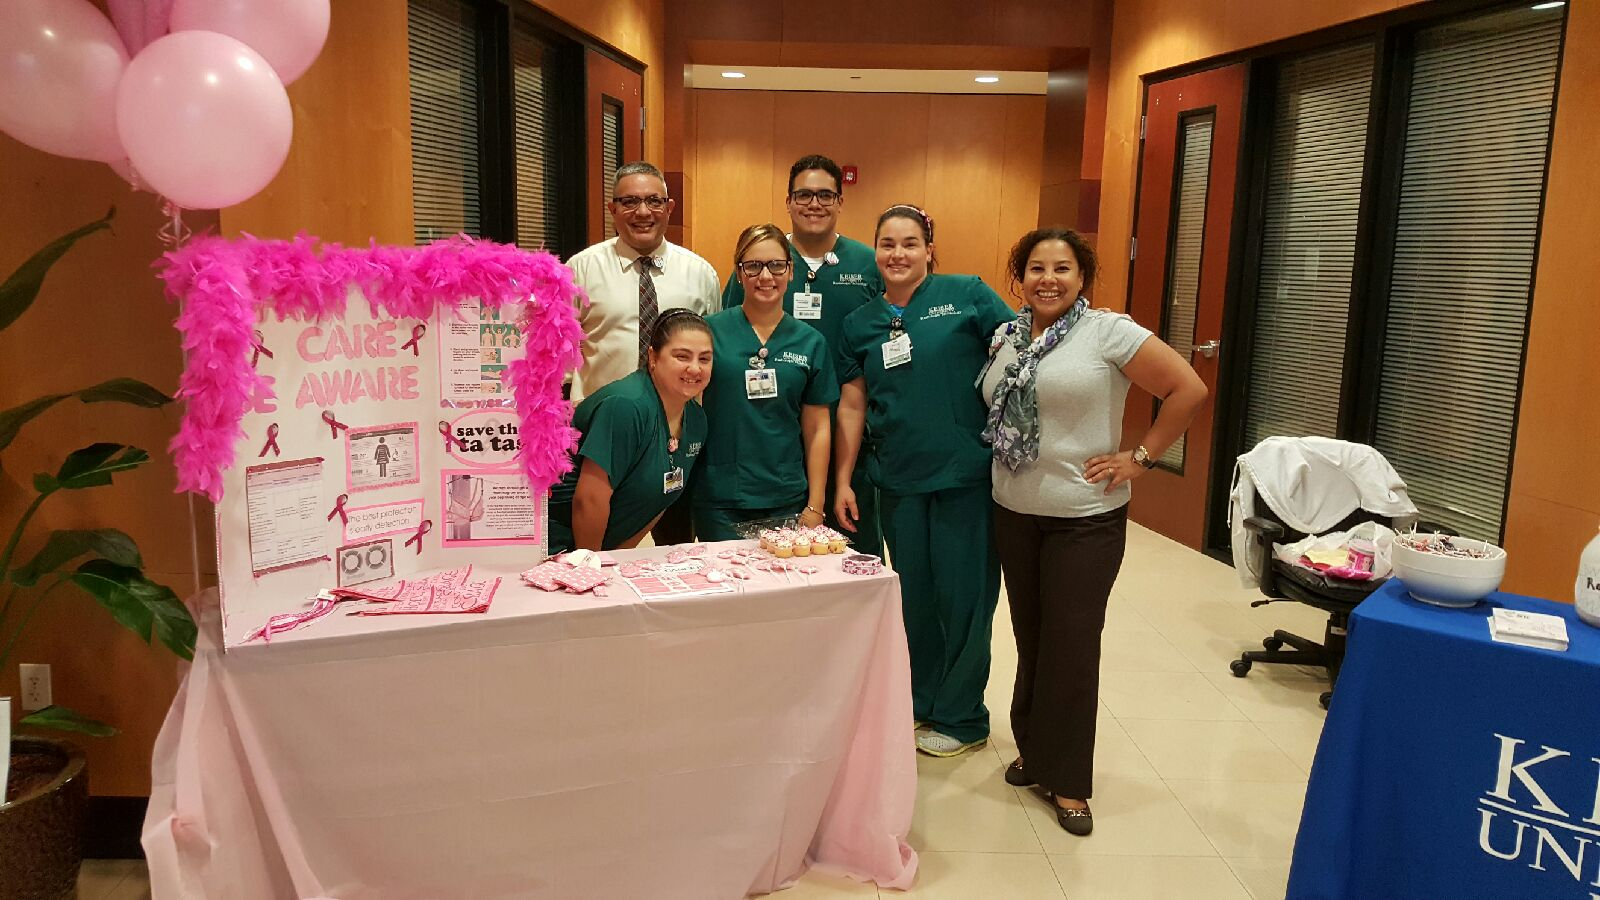 Miami's Chapter of Lambda Nu Imaging Honor Society holds a Club Awareness Day